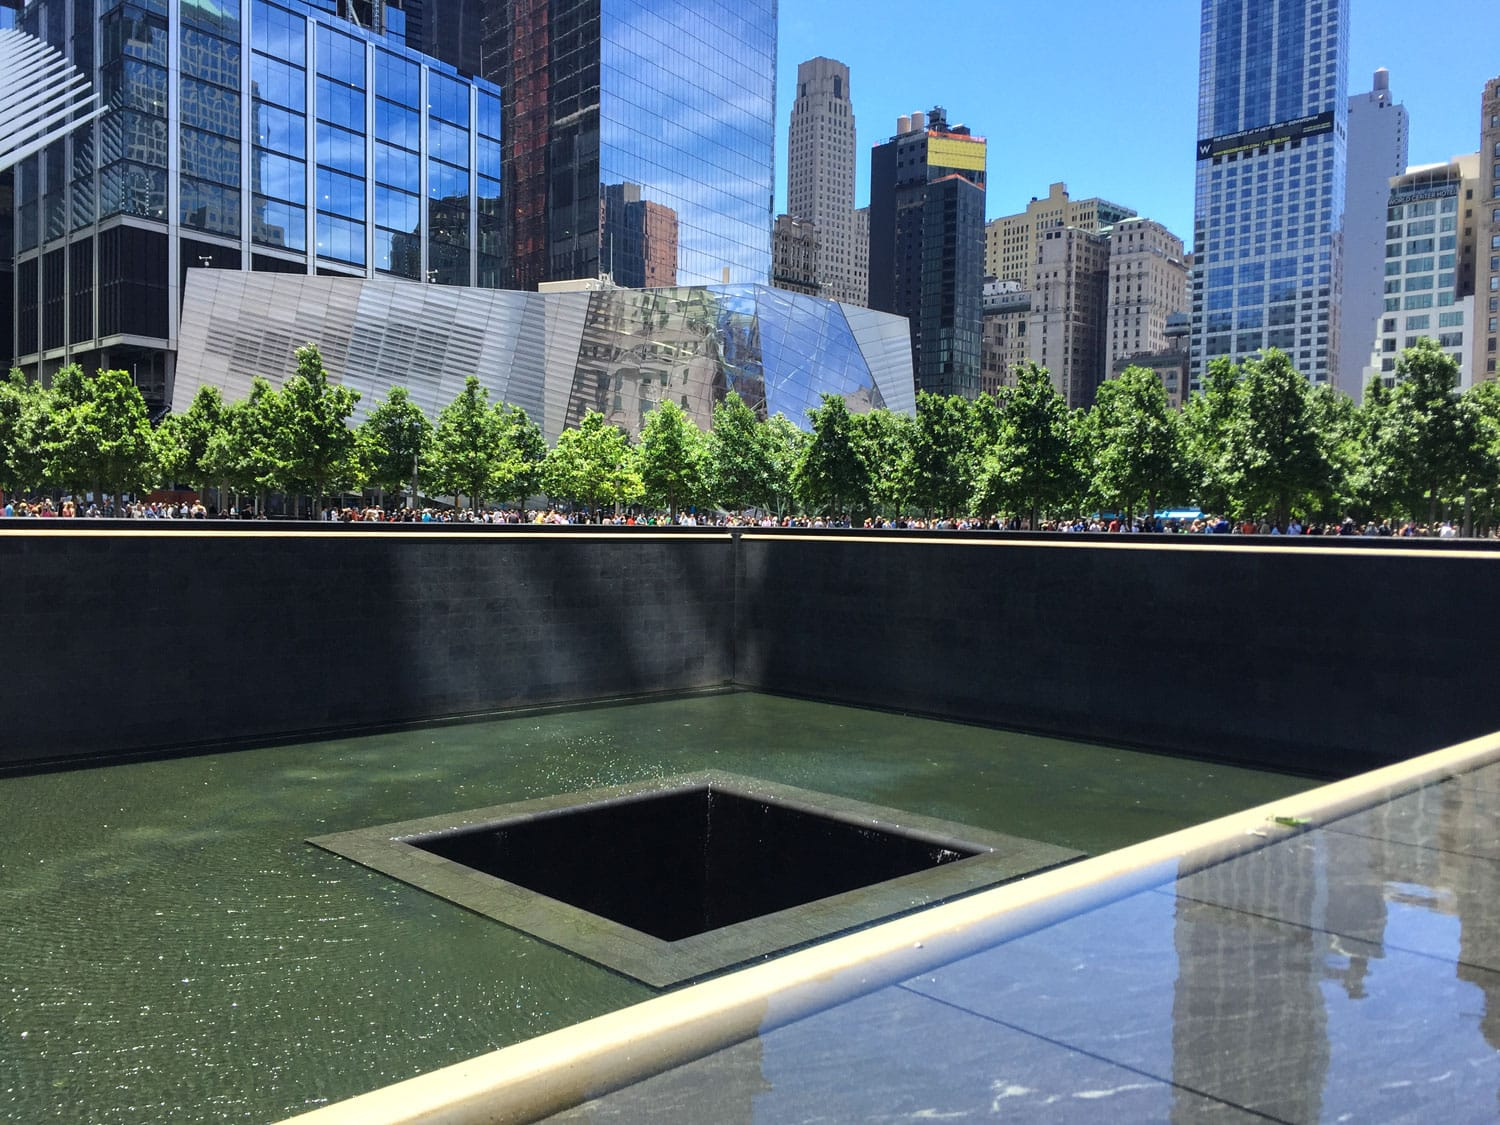 World trade Center memorial pond, New York City